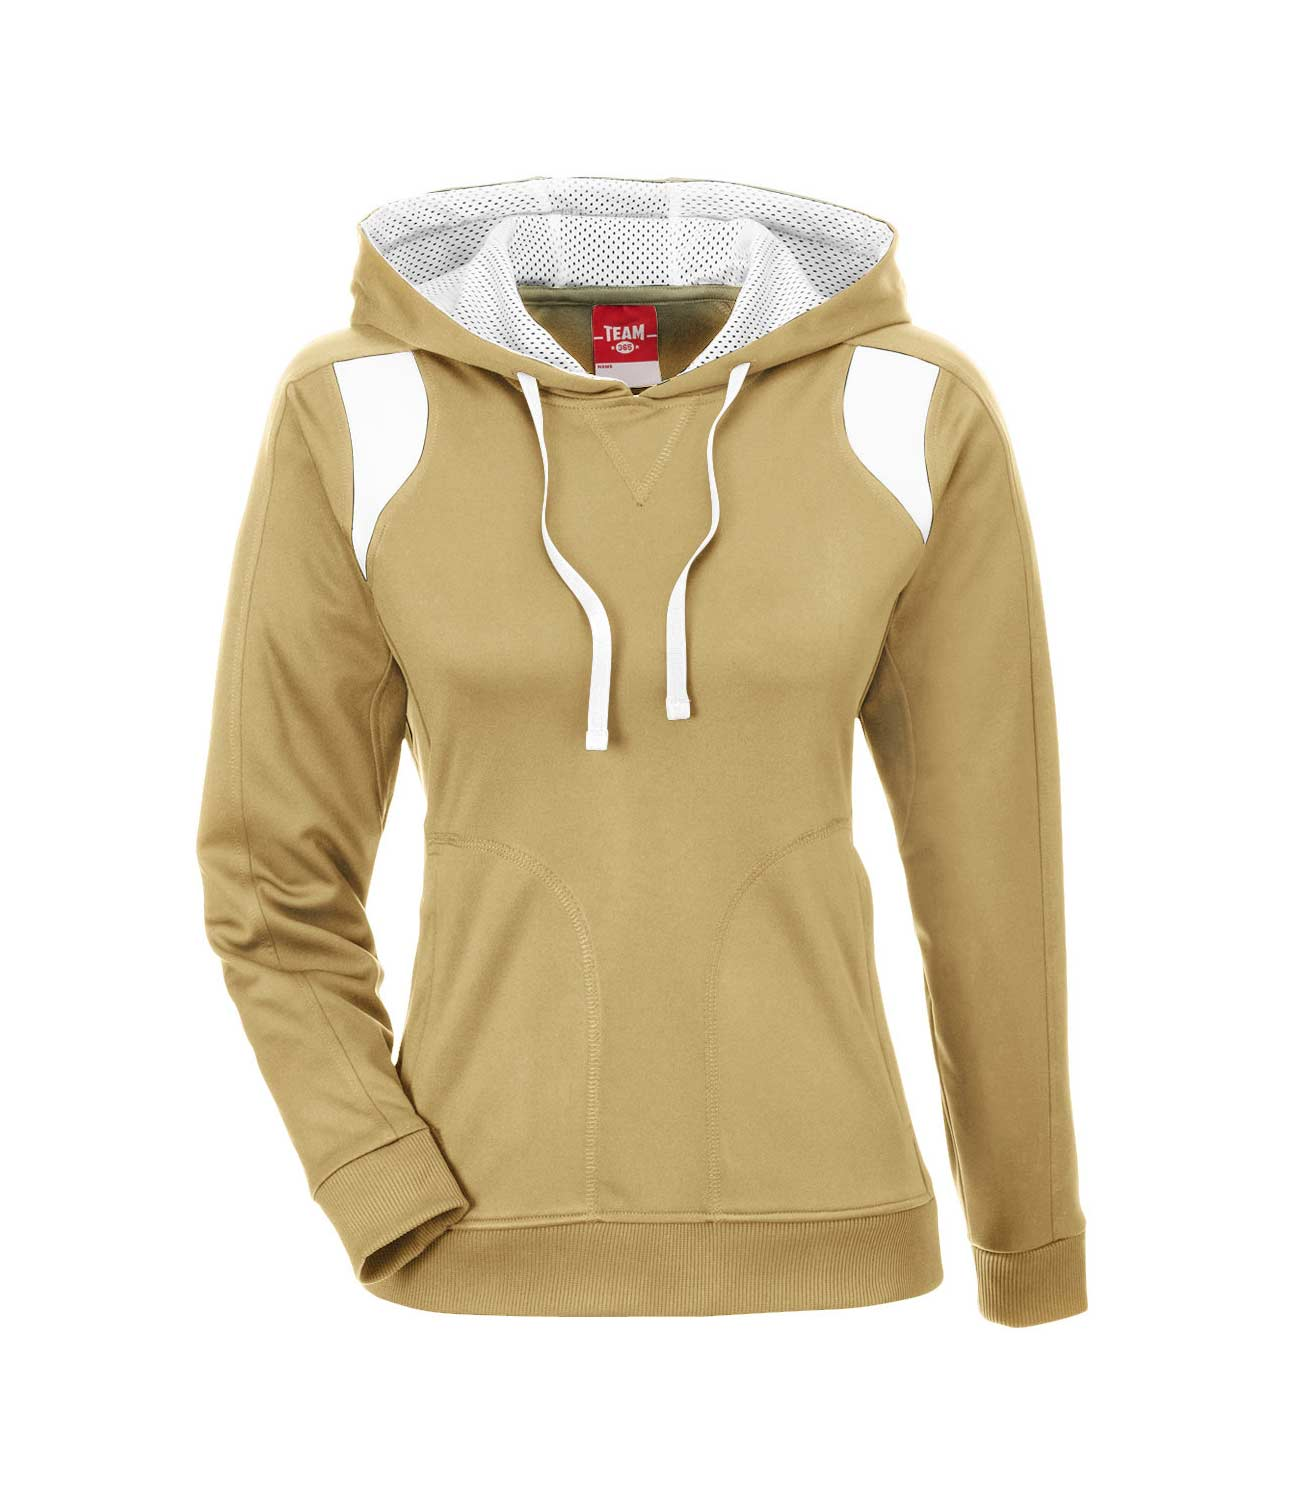 Team 365 Ladies Elite Performance Hoodie